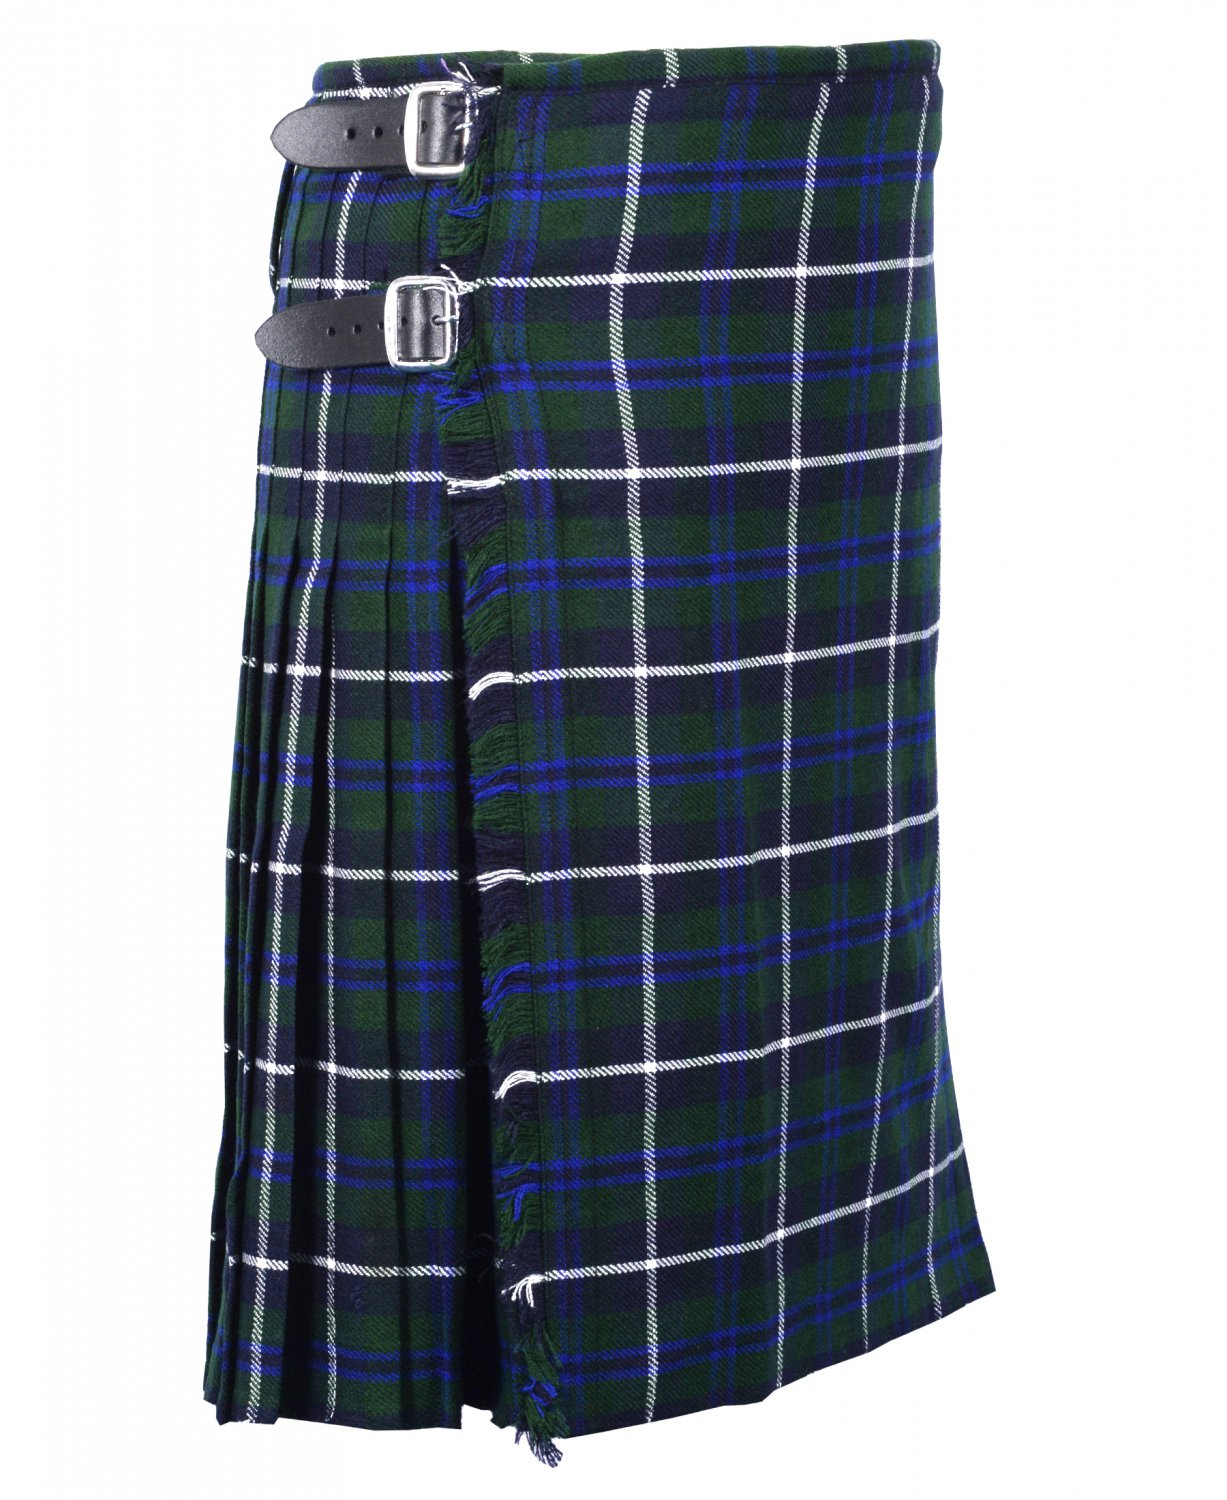 40 Inches Waist Size Traditional 8 Yard Handmade Scottish Kilt For Men - Blue Douglas Tartan